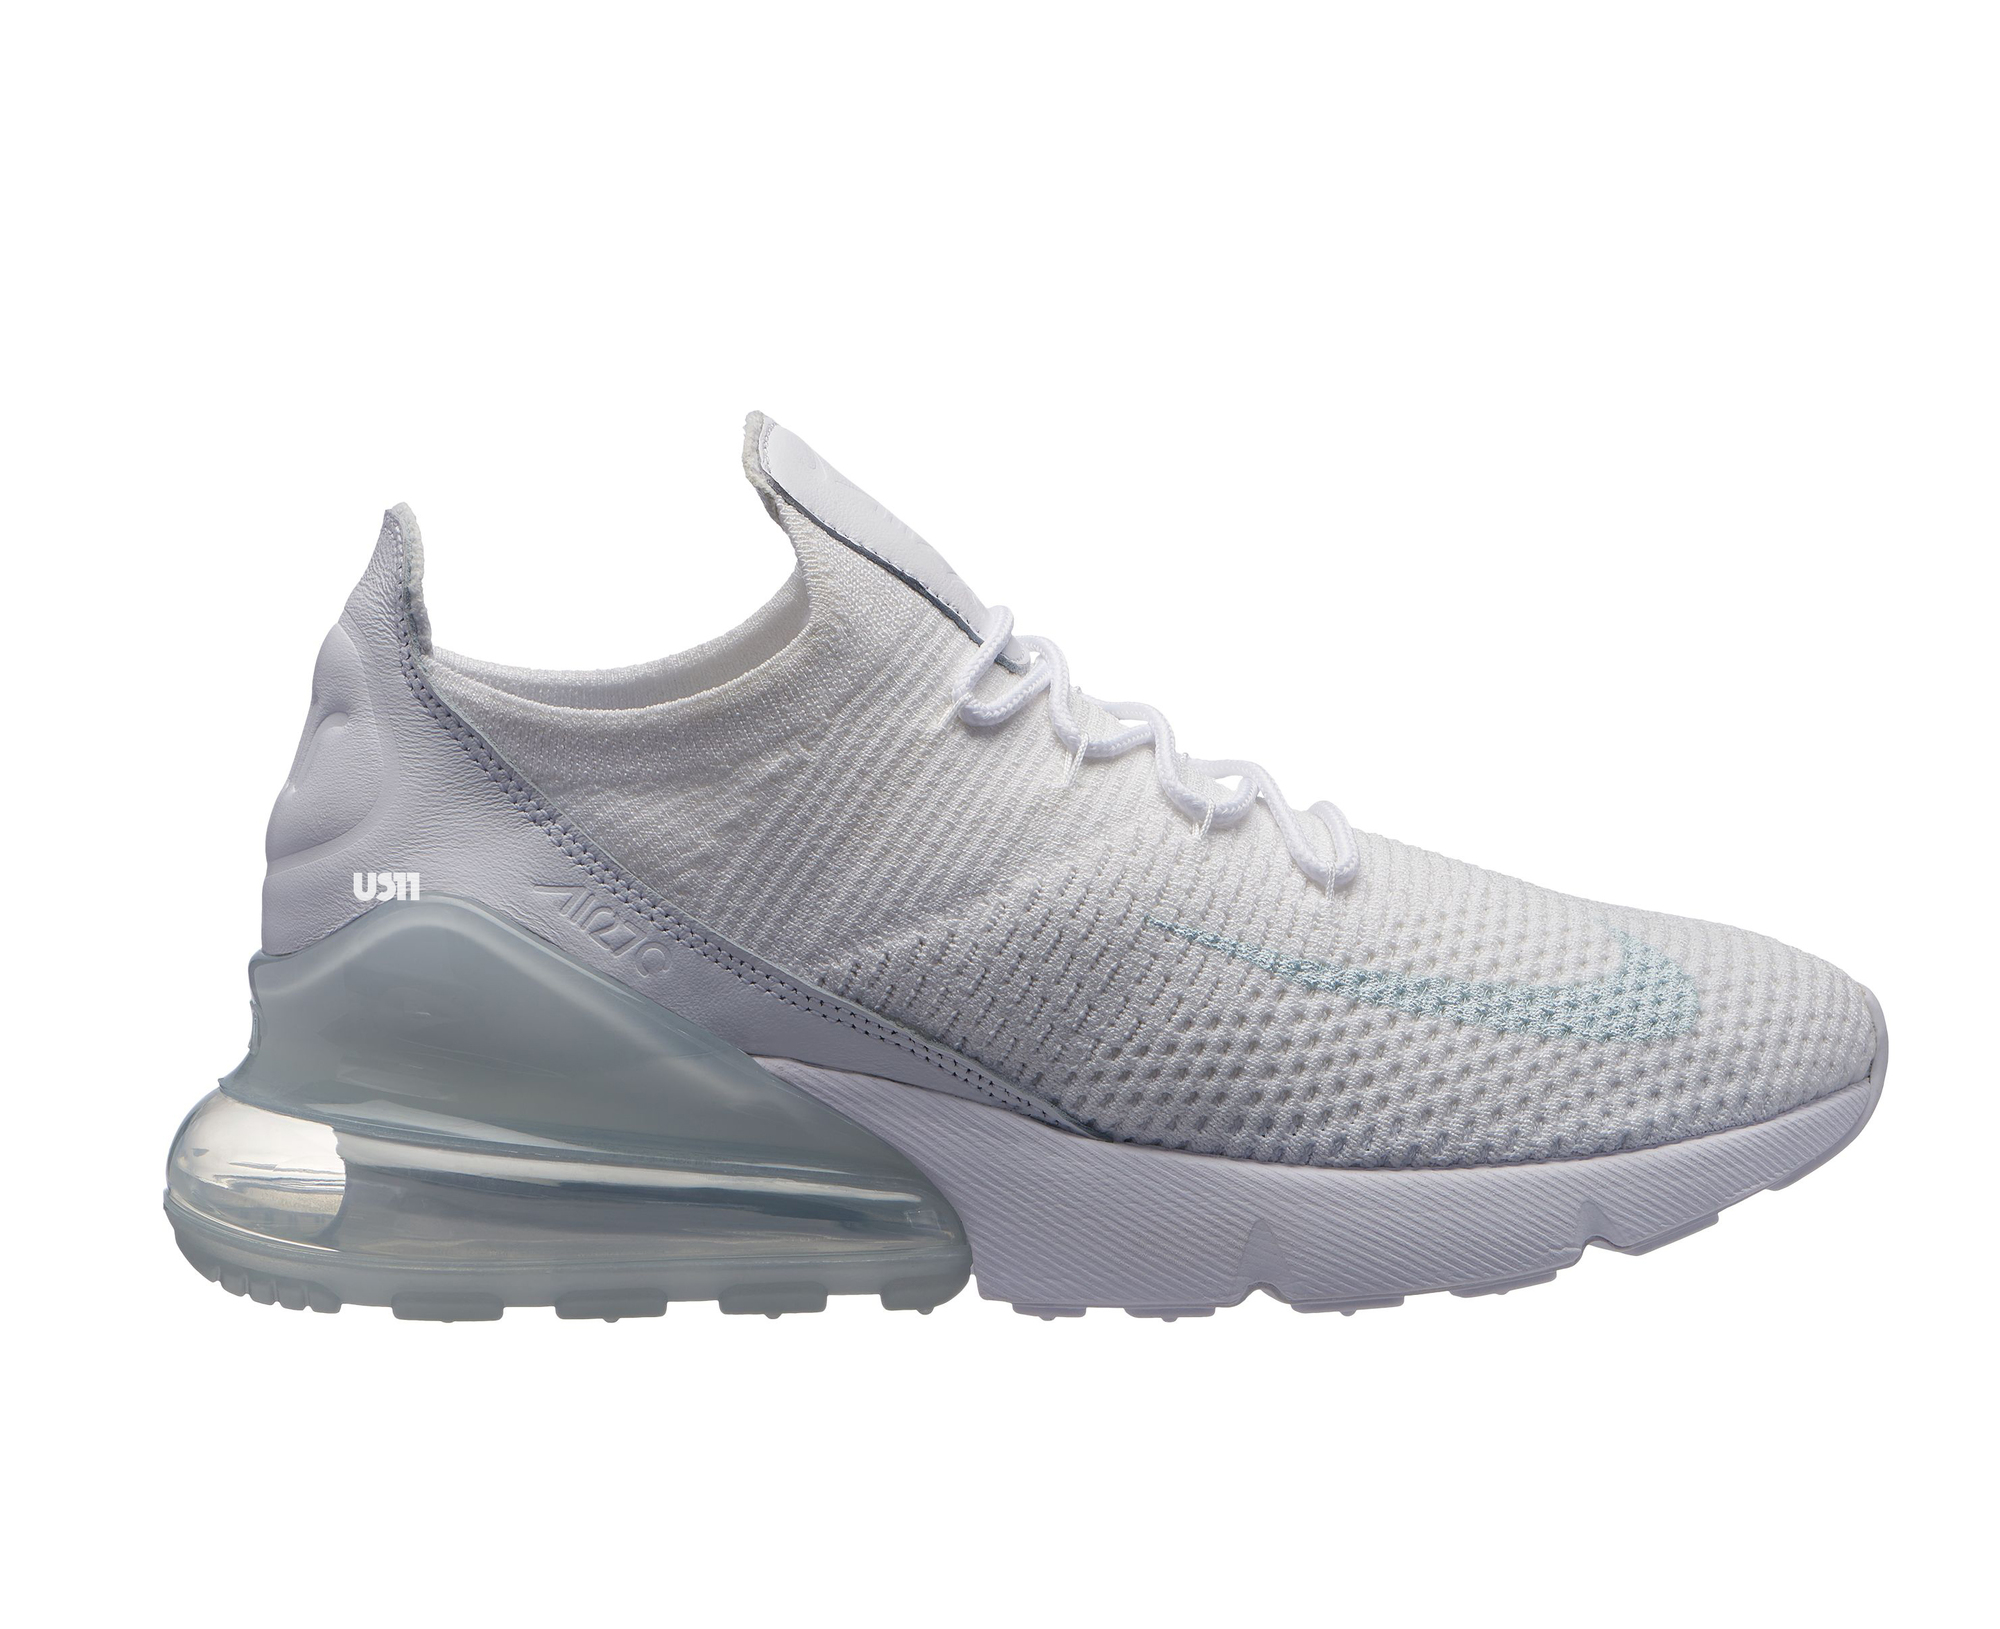 a2895339d62a nike air max 270 flyknit triple white - WearTesters